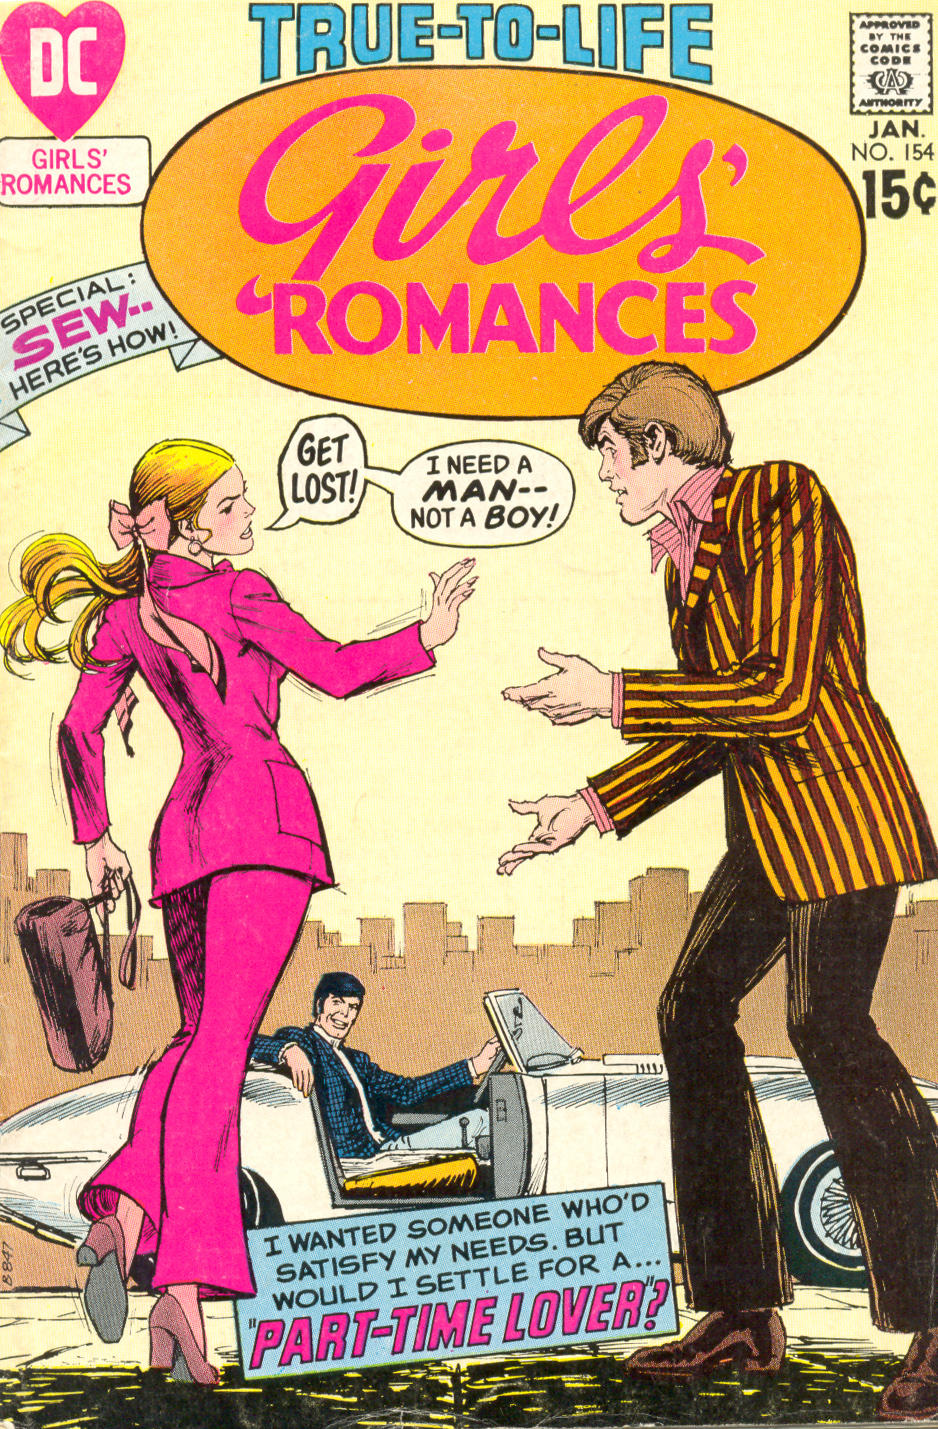 Girls' Romances  #154 (January 1971)